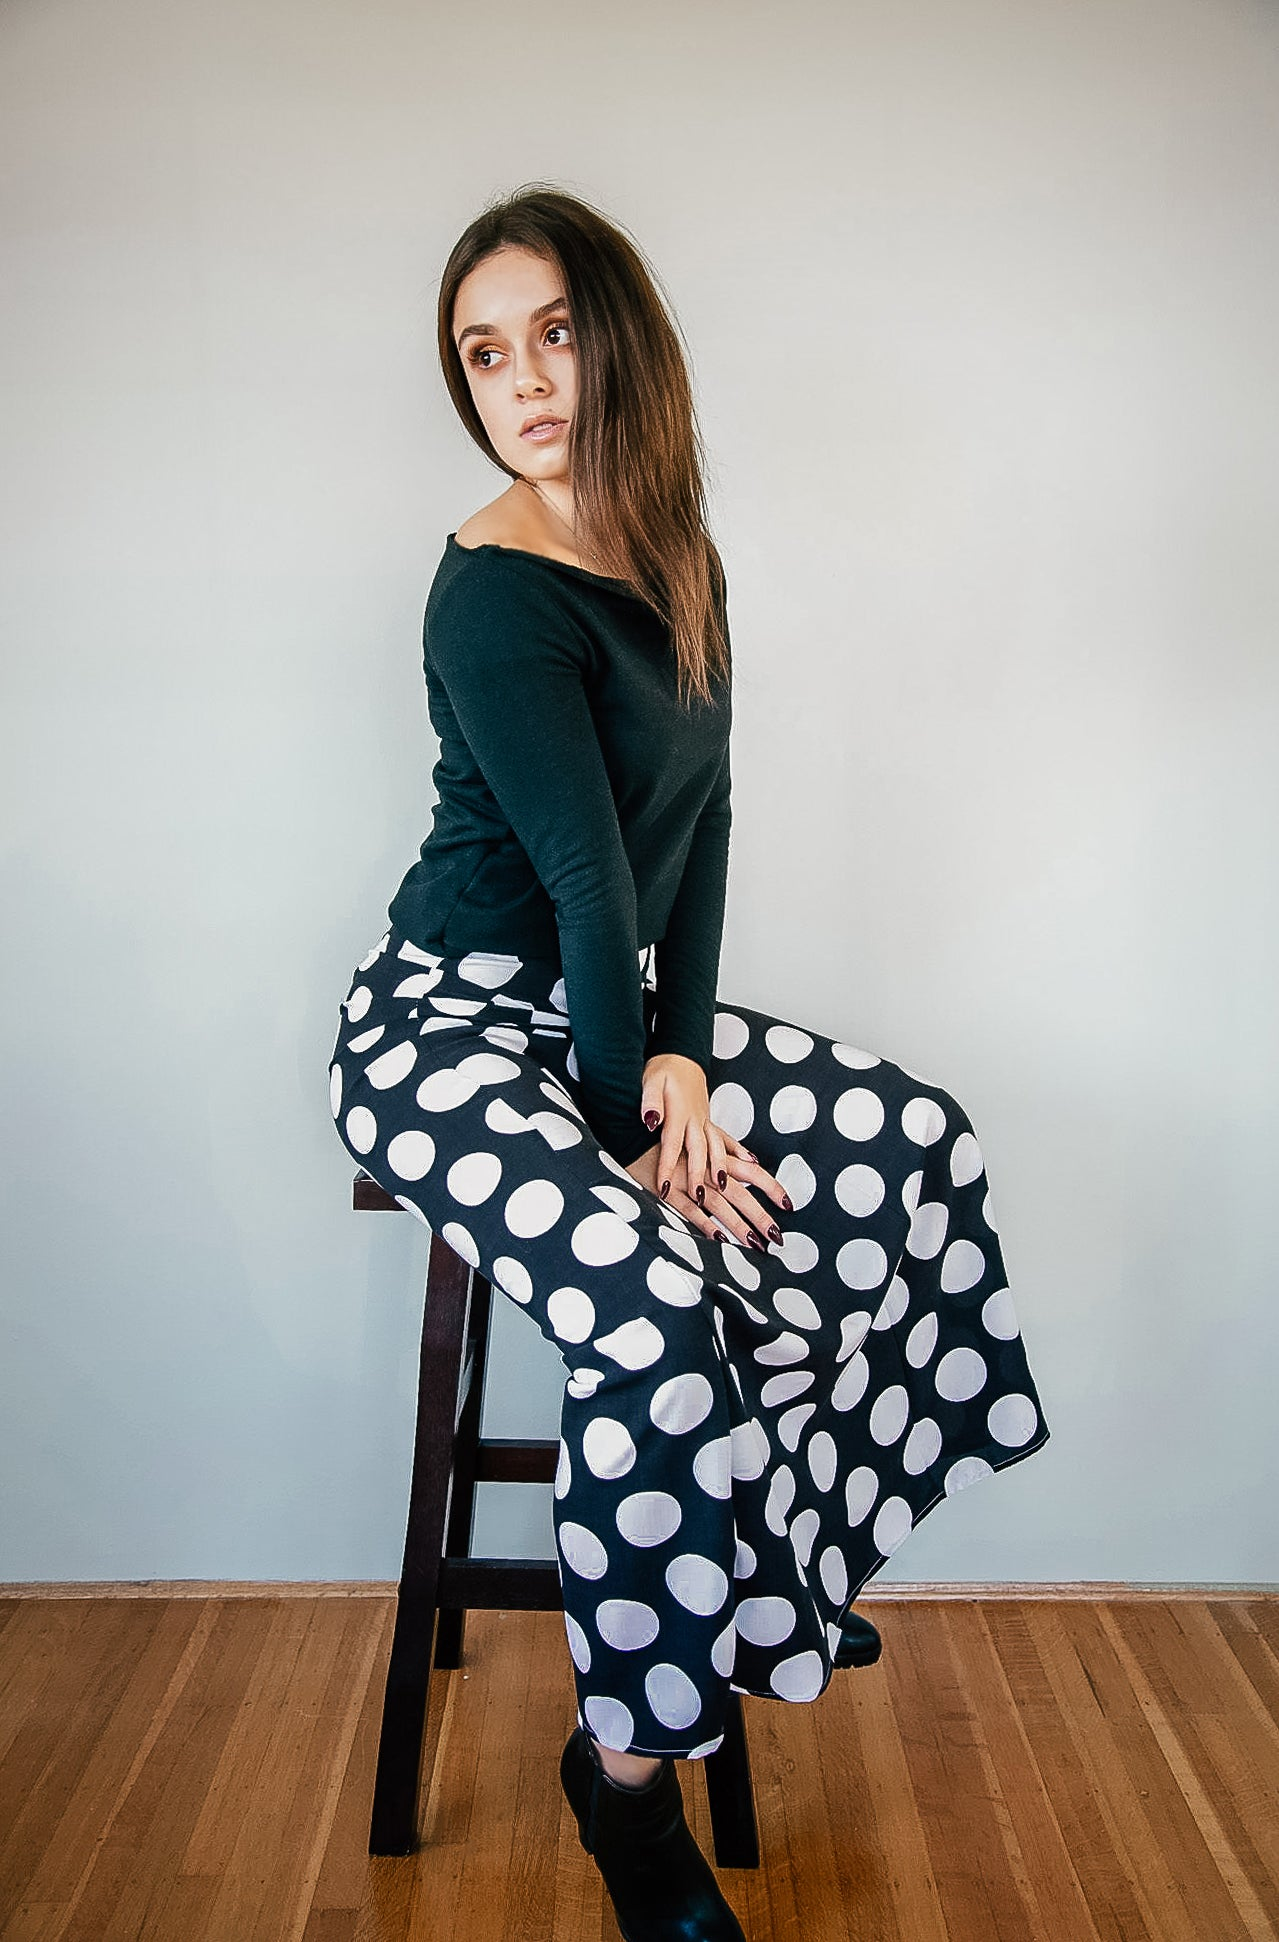 Samia Oz for Kim Legler - Wearing long polka dot skirt and black cold shoulder top